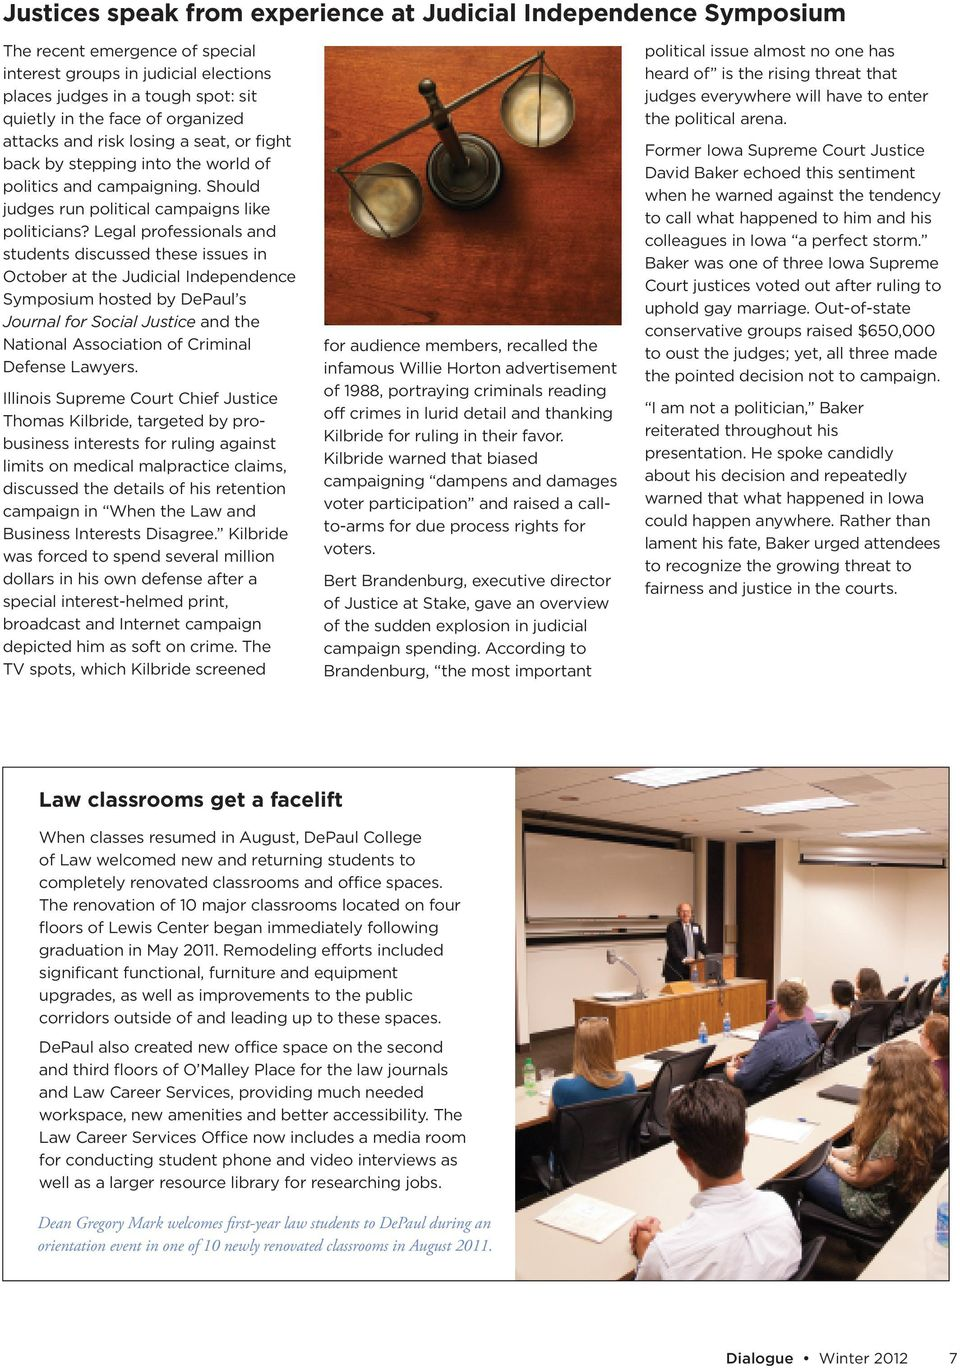 Legal professionals and students discussed these issues in October at the Judicial Independence Symposium hosted by DePaul s Journal for Social Justice and the National Association of Criminal